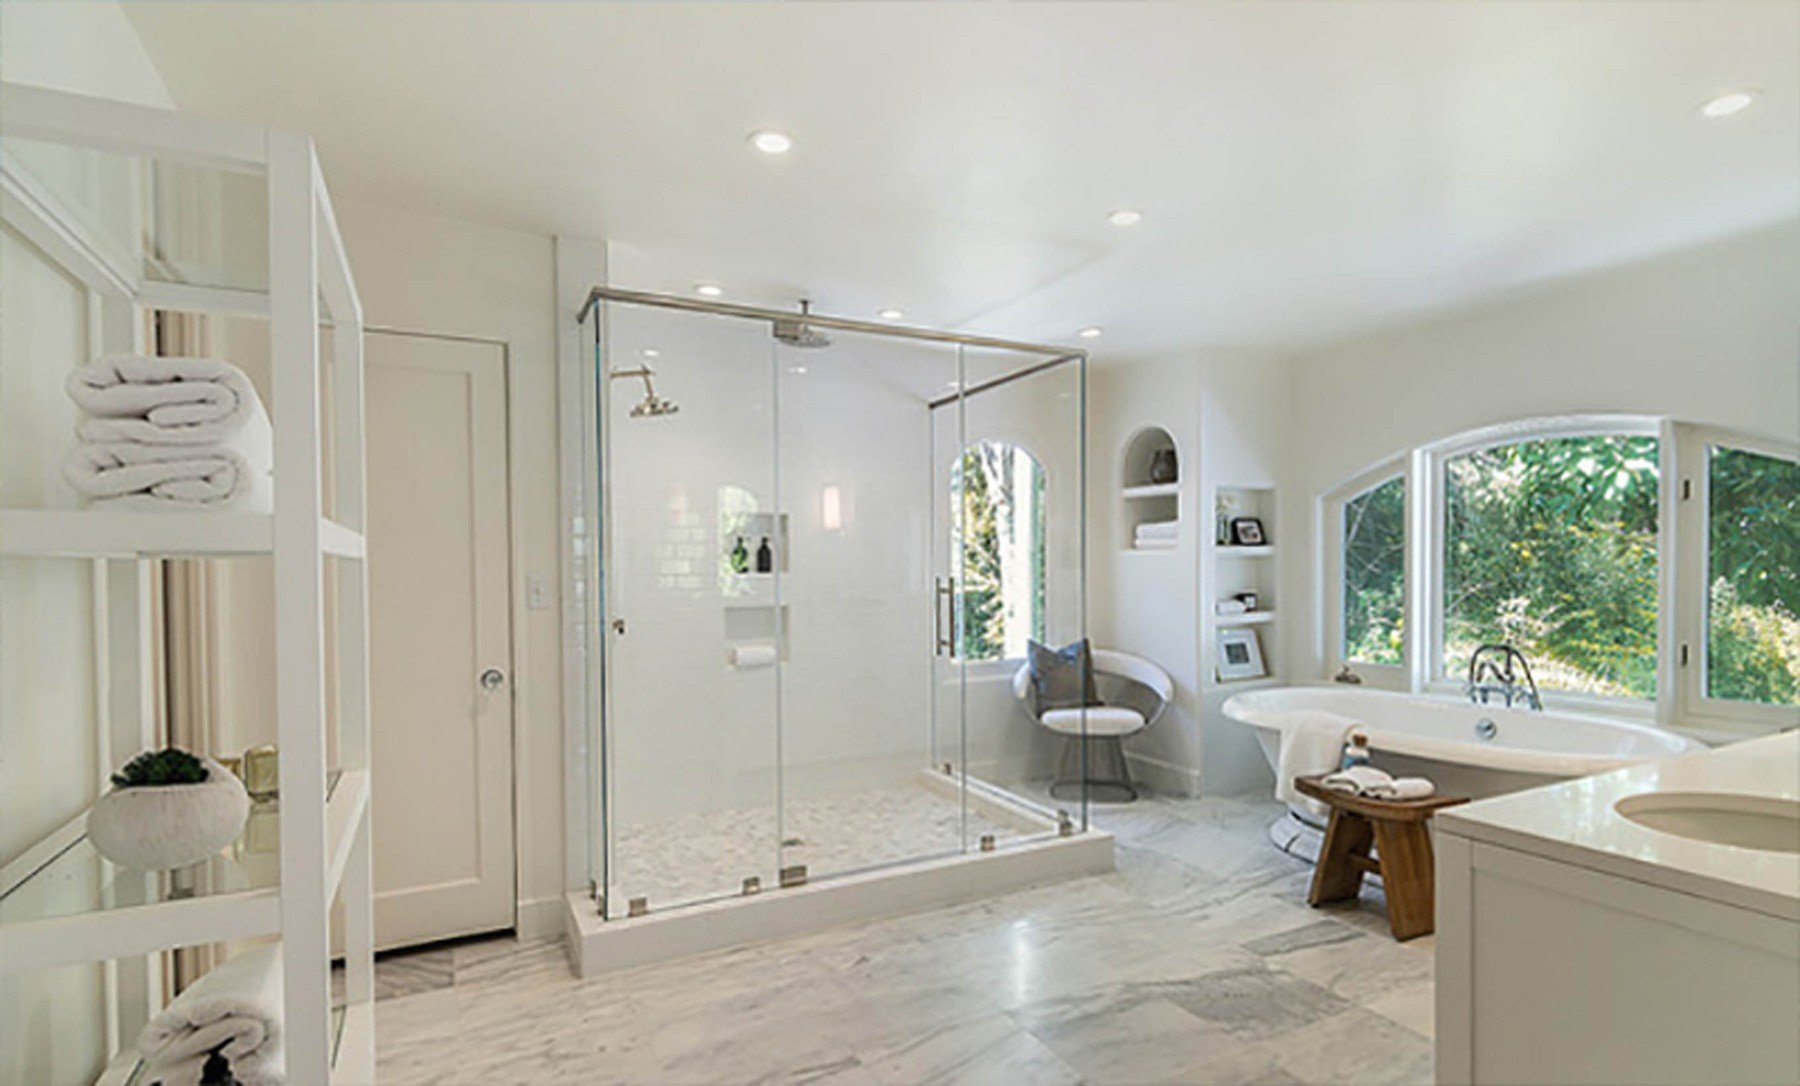 2-4-2019  Jessica Alba is looking to sell her home in Beverly Hills, Los Angeles for .195 million having recently purchased a larger house. With 5,300 square feet of living space, there are 5 bedrooms and 7 bathrooms. Built in the mid-1970s, the house sits on almost half of an acre of land behind large security gates.  Pictured: Jessica Alba's house, Image: 423690032, License: Rights-managed, Restrictions: , Model Release: no, Credit line: Profimedia, Planet